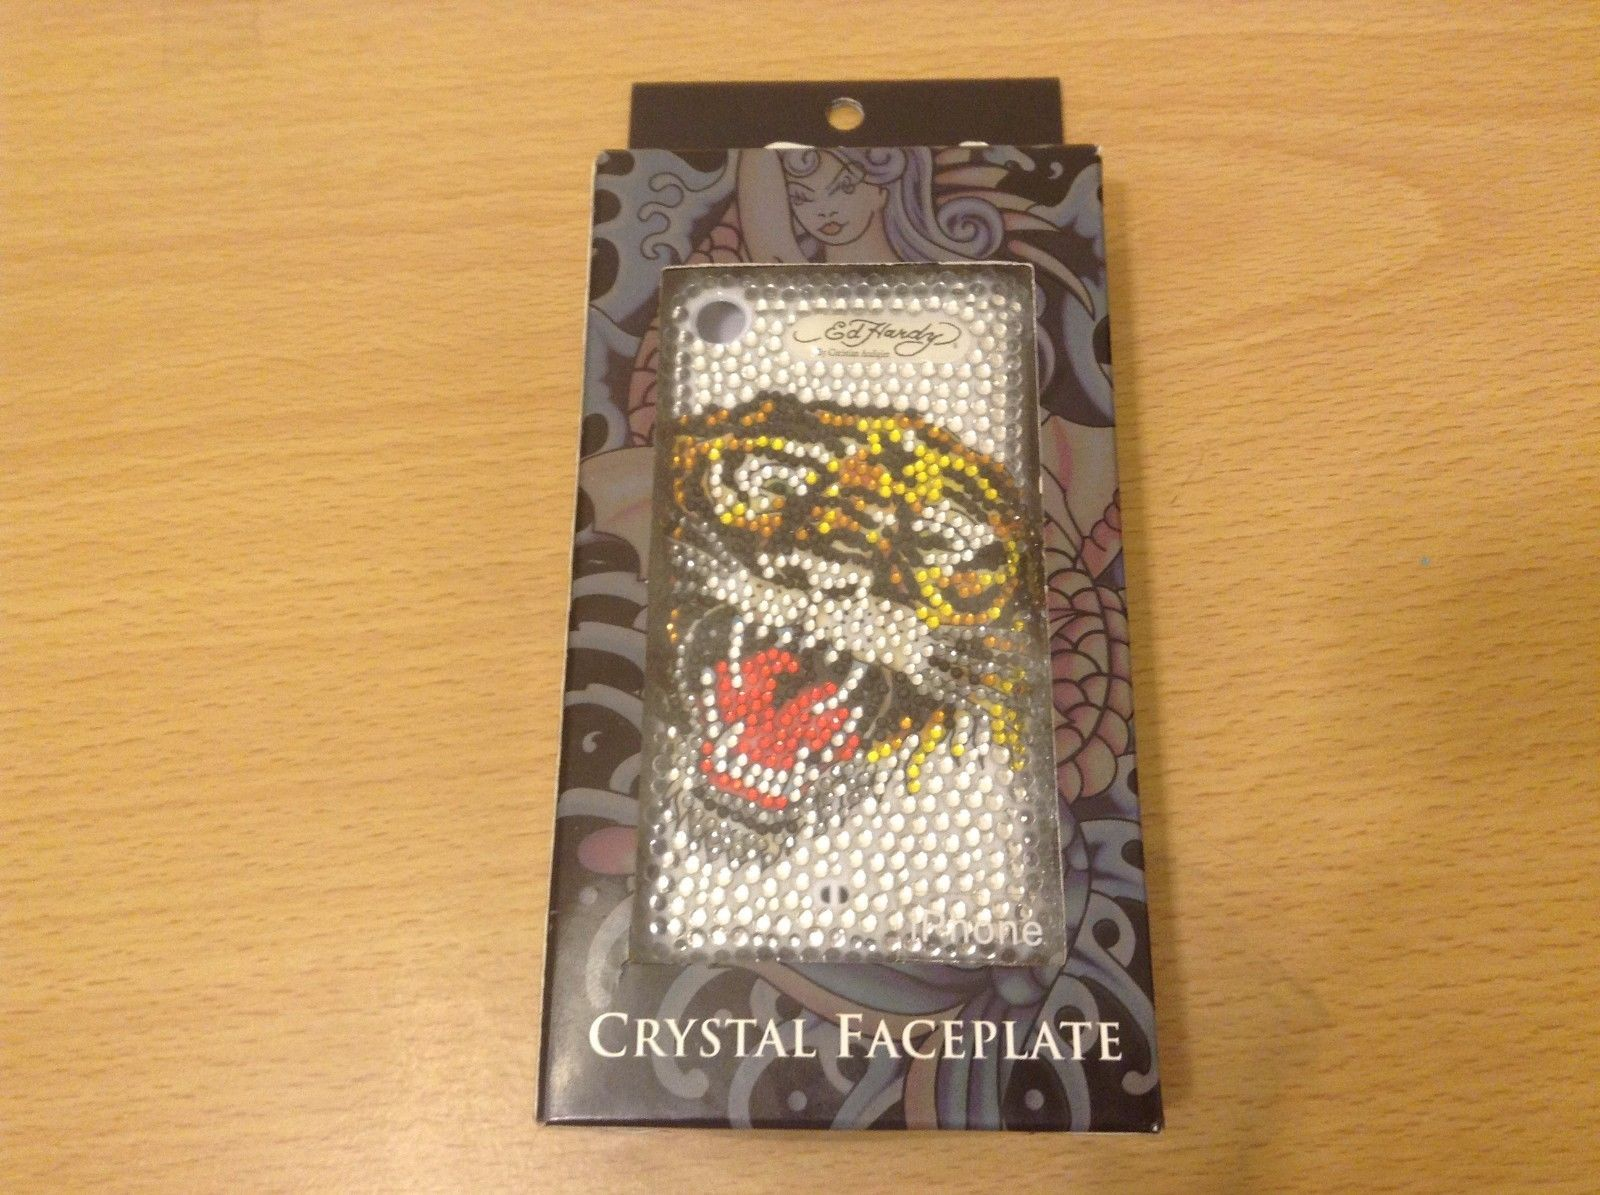 Ed Hardy Icing Vintage Original iPhone Crystal Face Plate New In Box Tiger